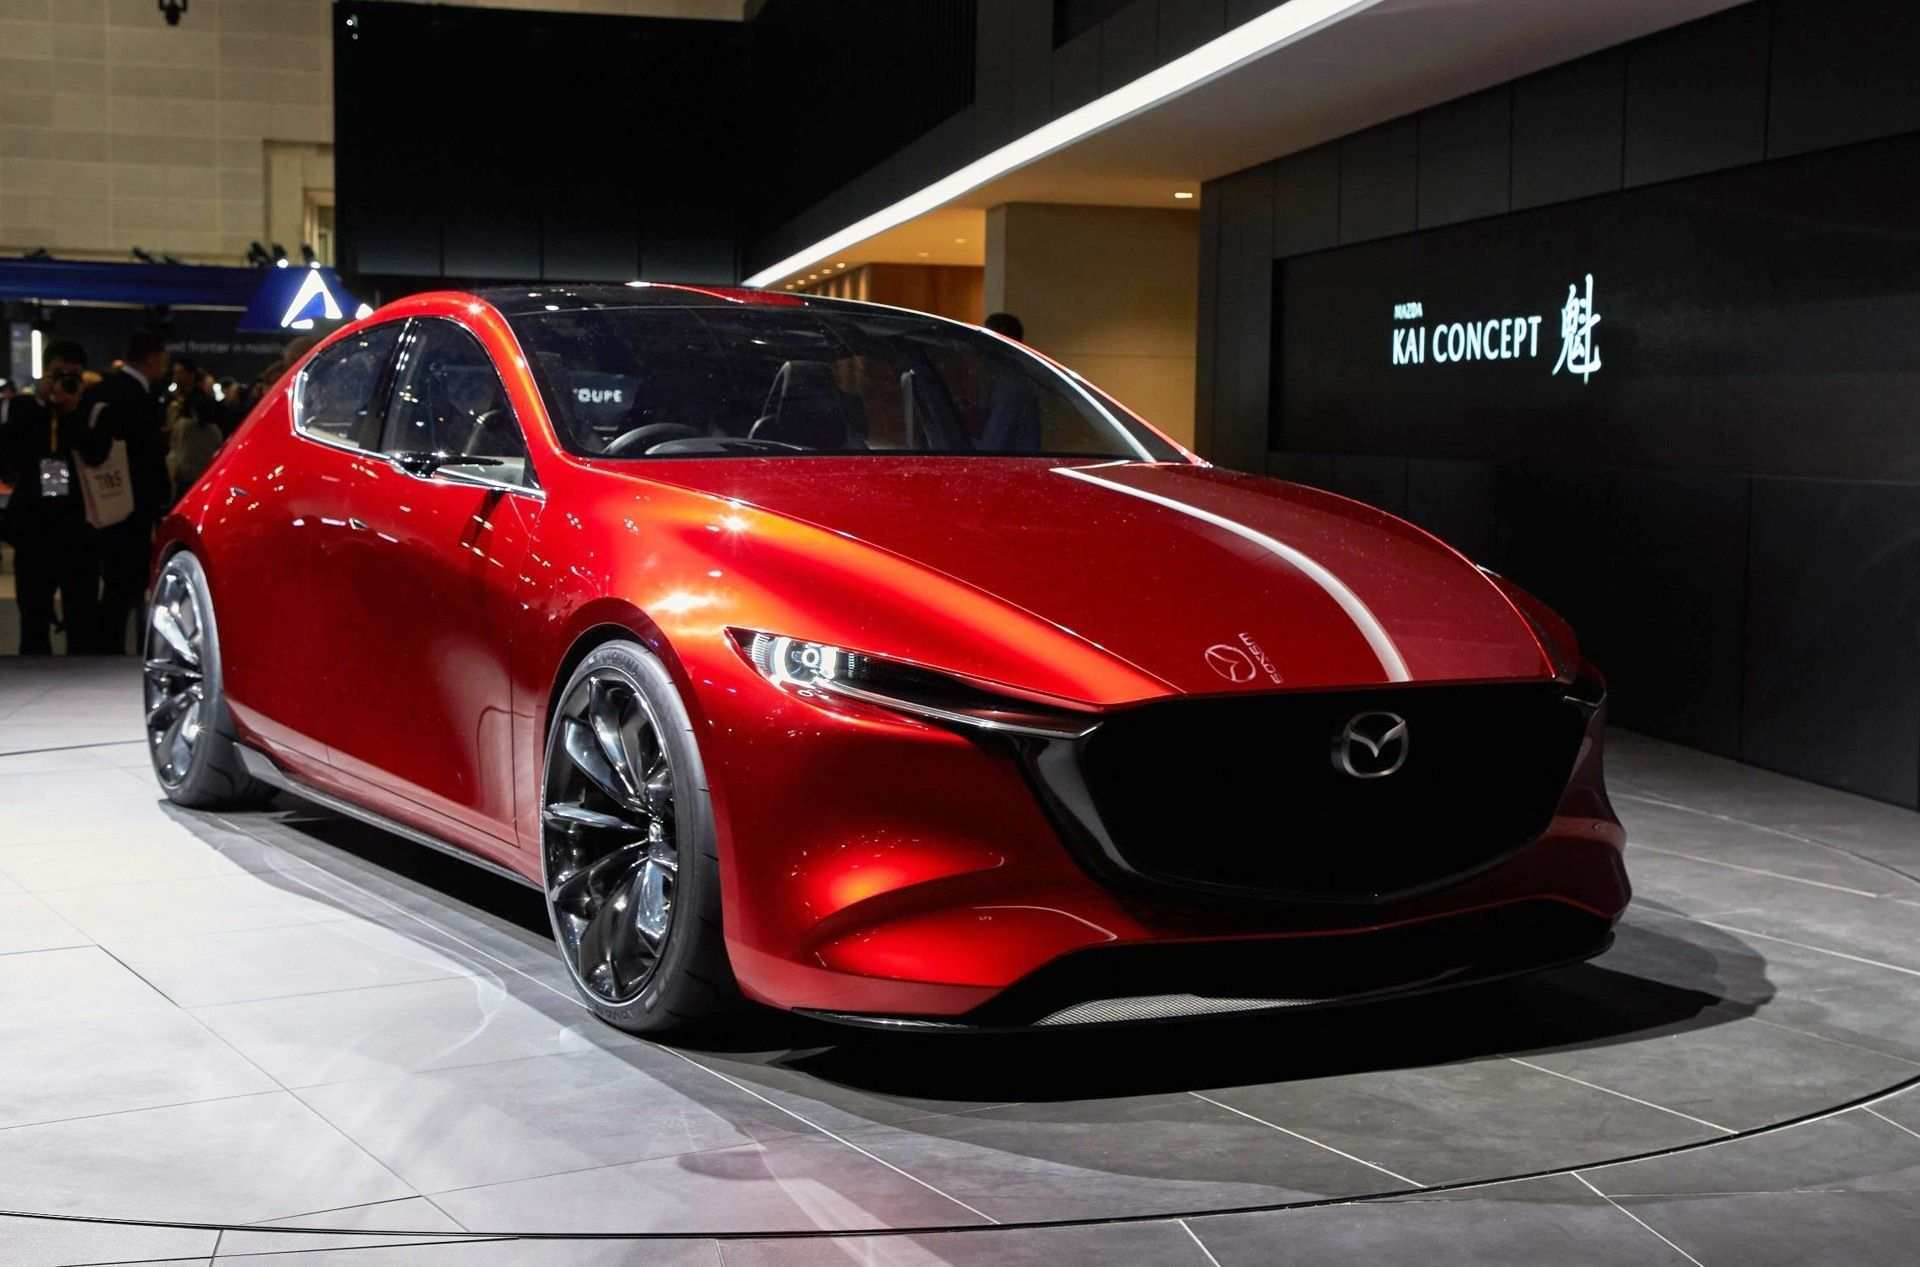 70 New Best Mazda Sport 2019 Exterior Pictures with Best Mazda Sport 2019 Exterior